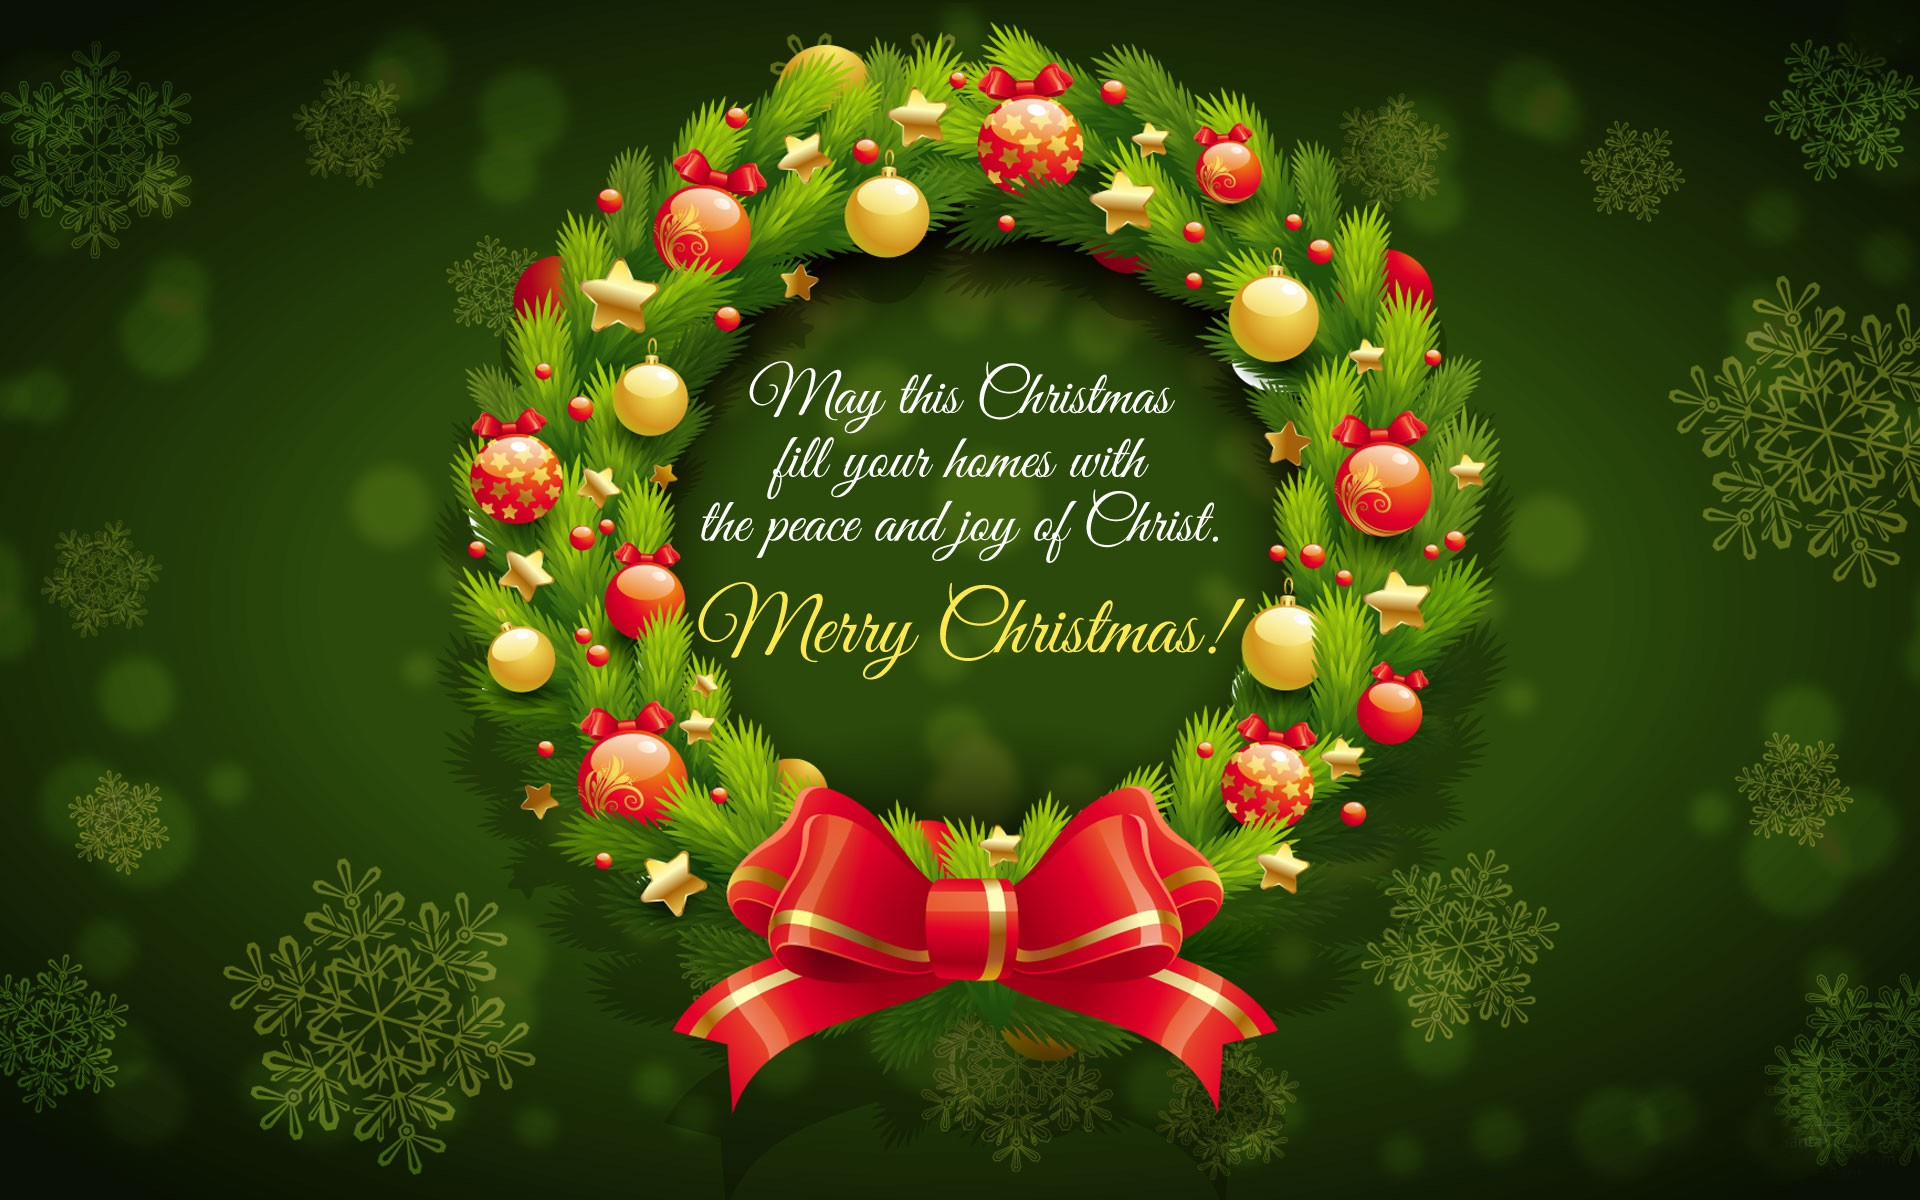 Merry Christmas Wishes 8